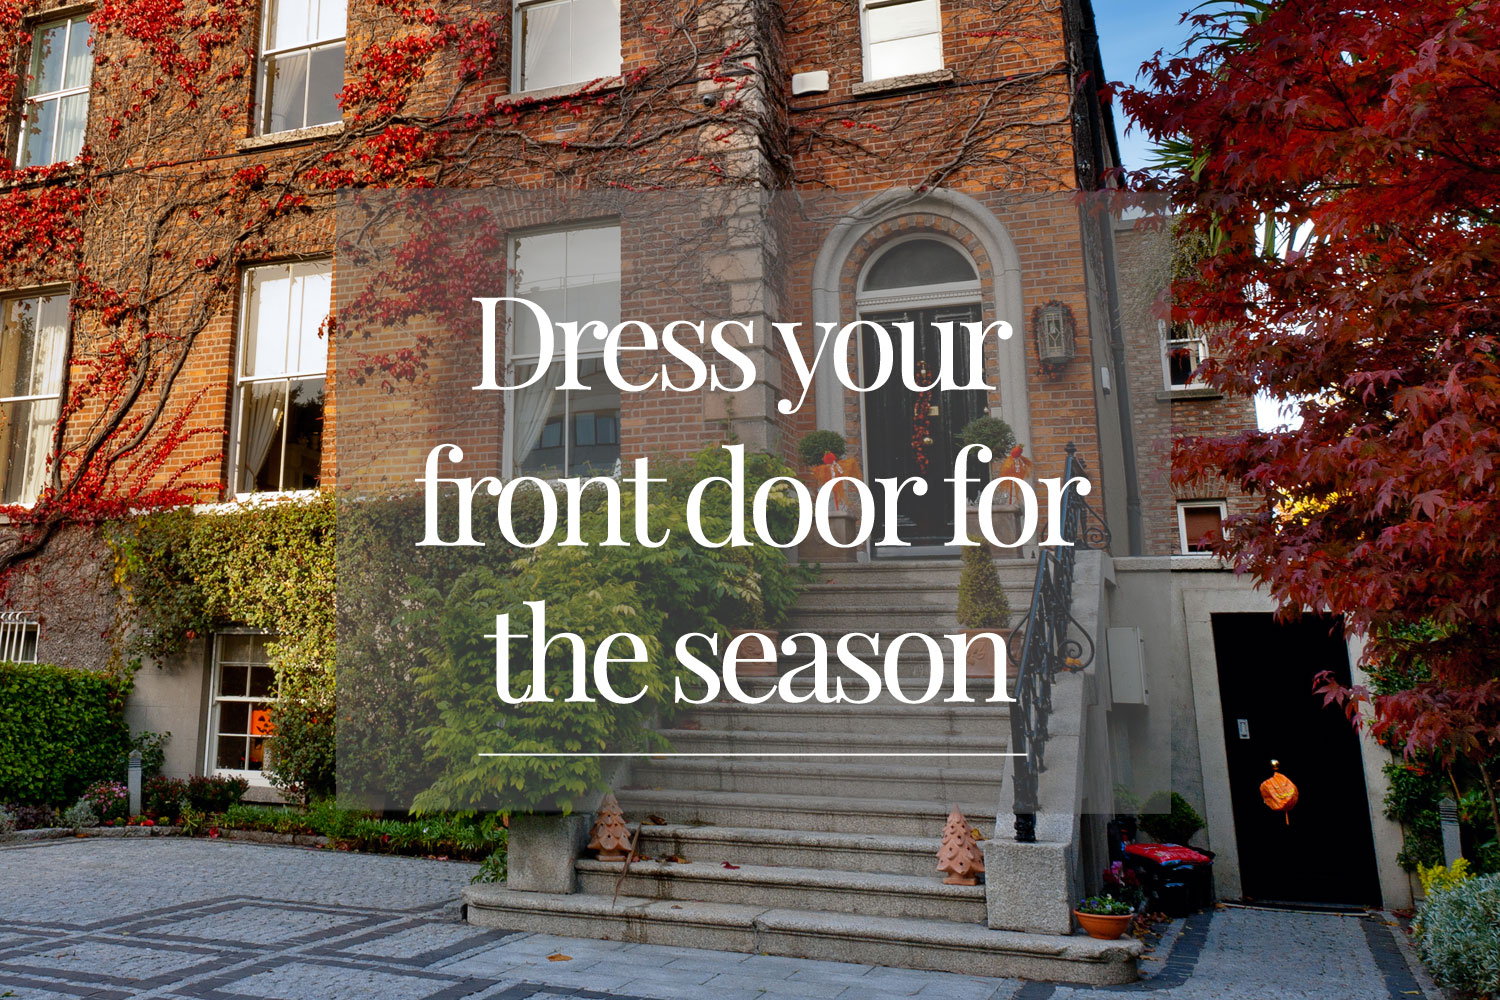 Dress-your-front-door-for-the-season